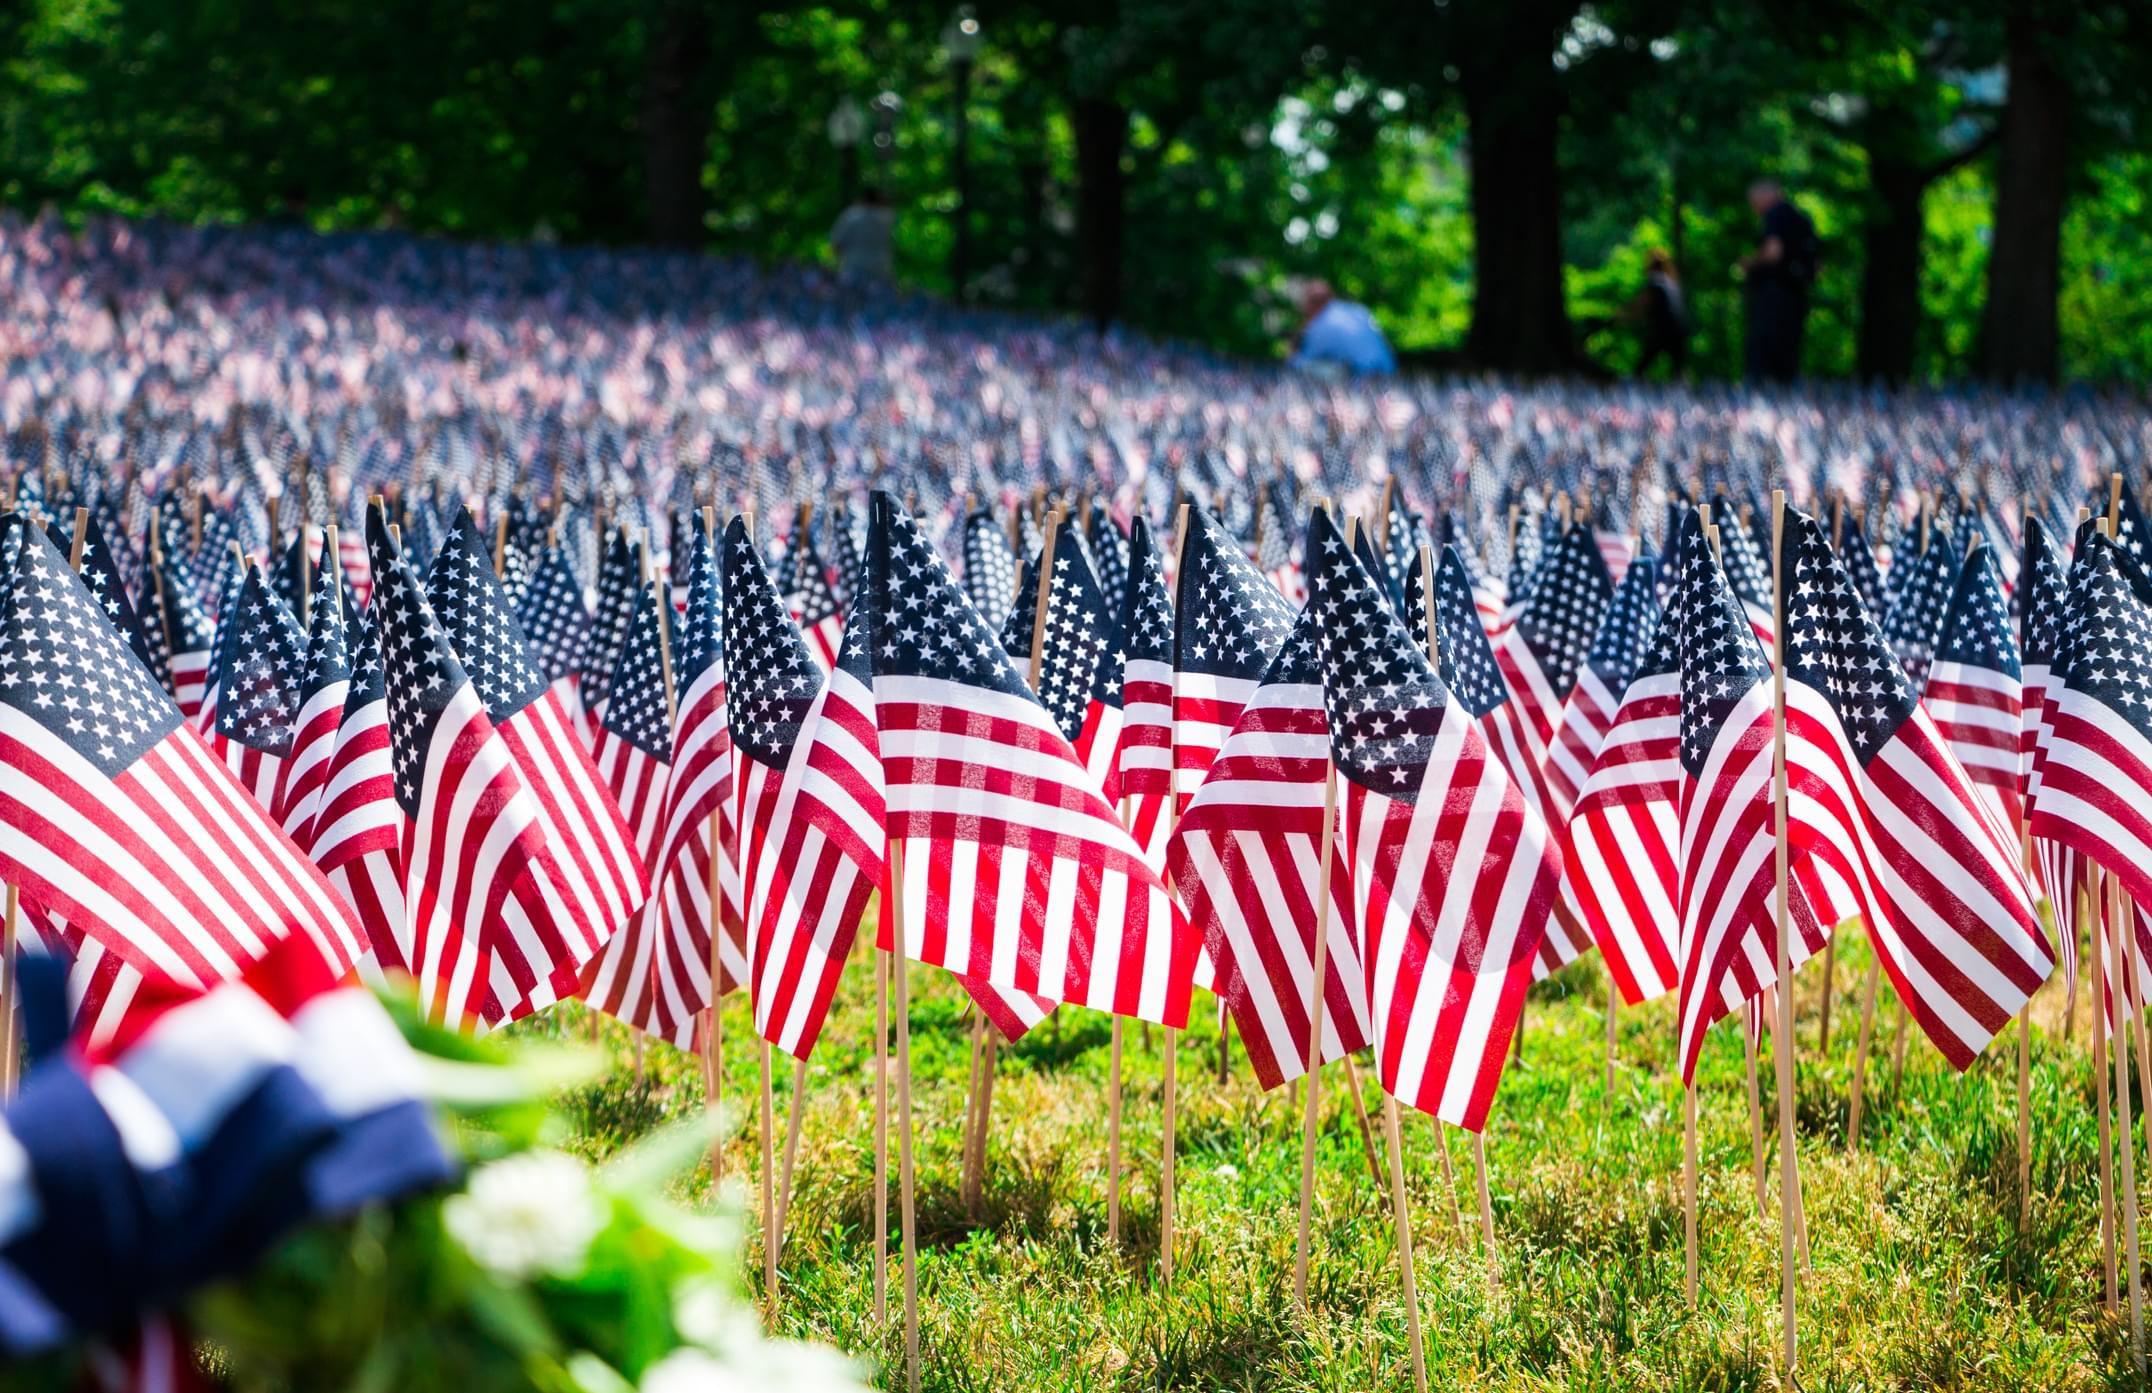 A Field Of American Flags On A Grassy Hill In Boston Common Park